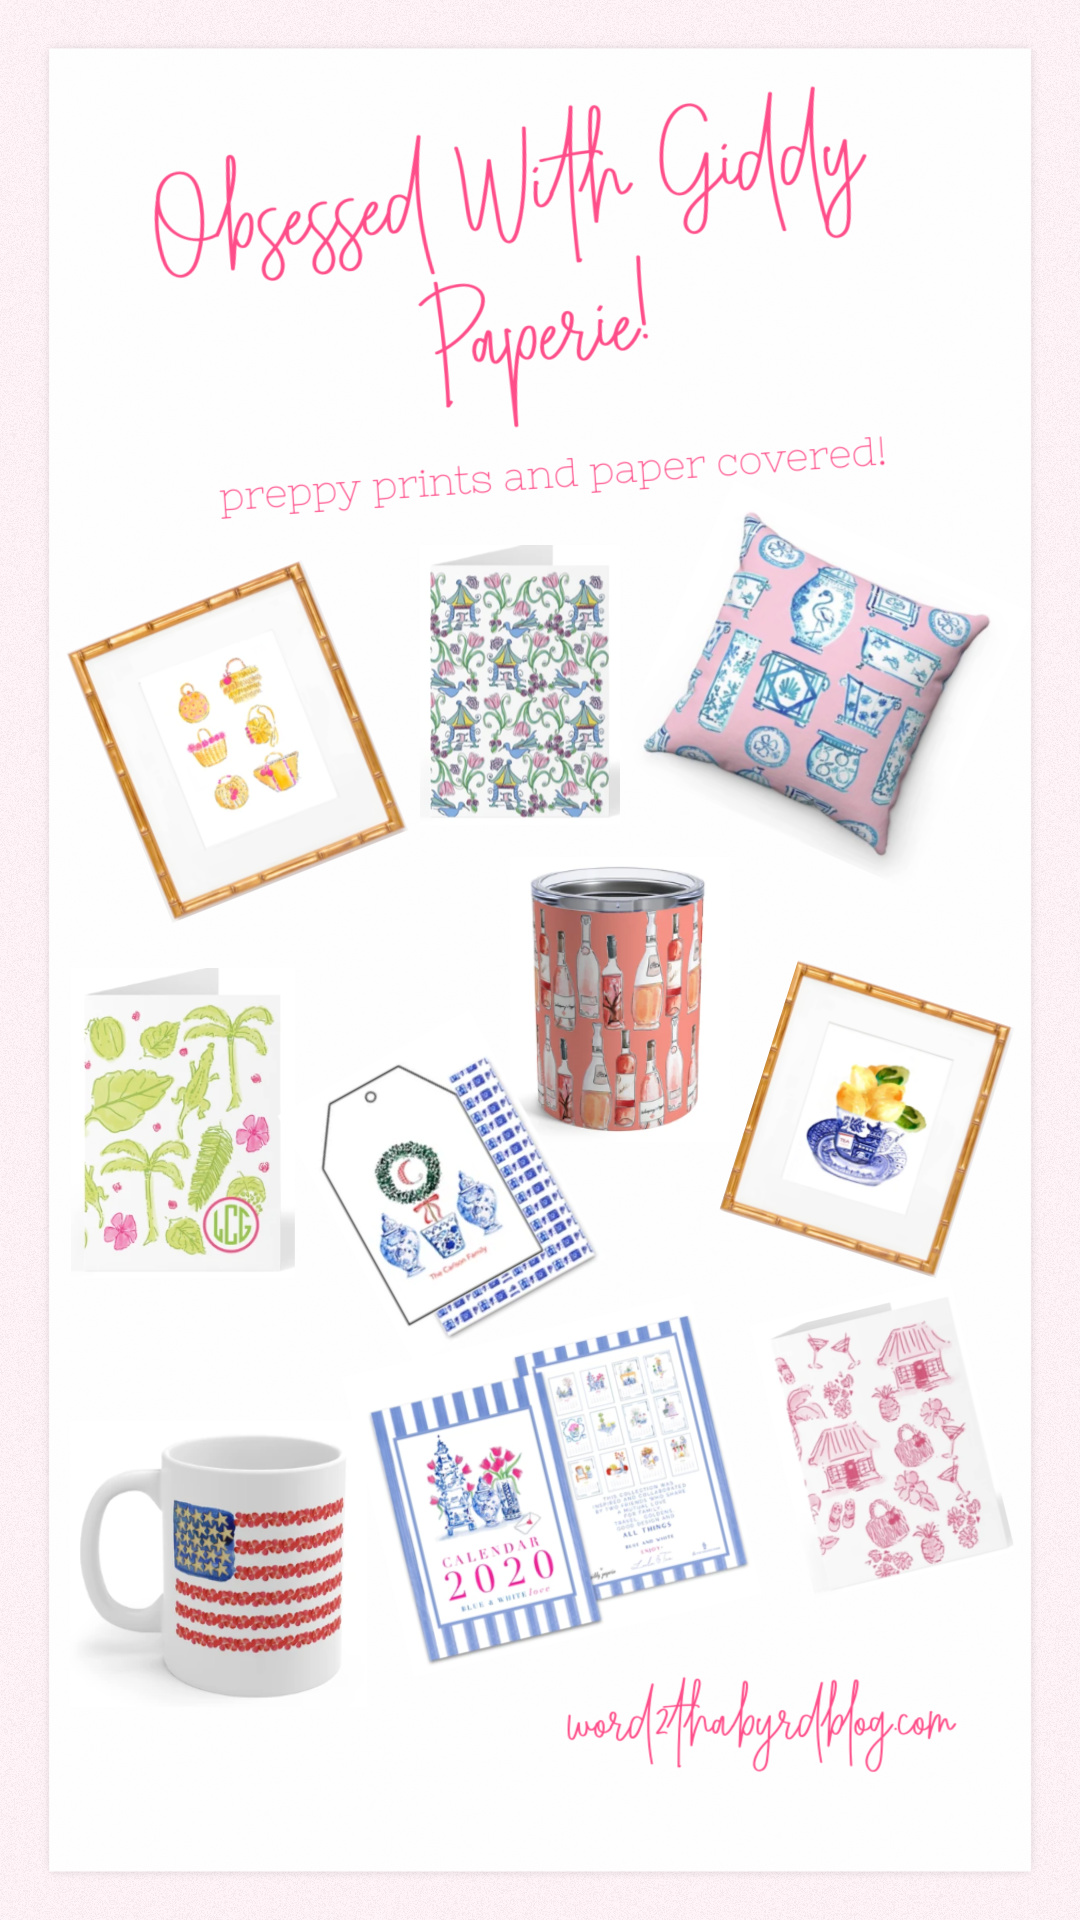 Brand Highlight Giddy Paperie